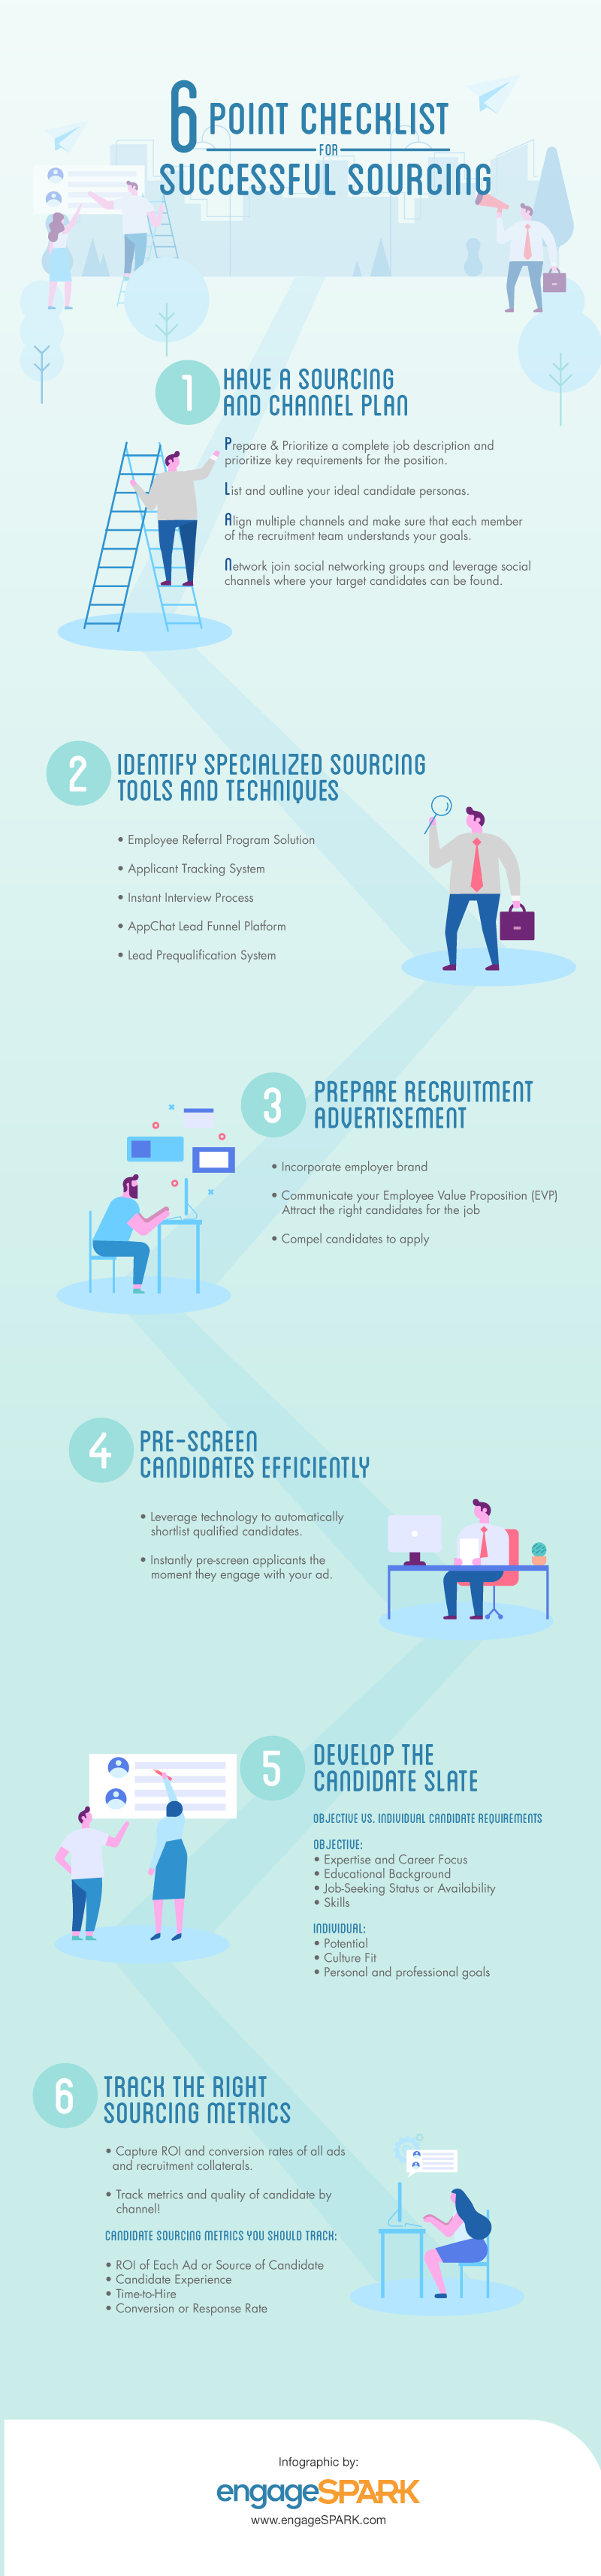 6 point checklist for successful sourcing with infographic send